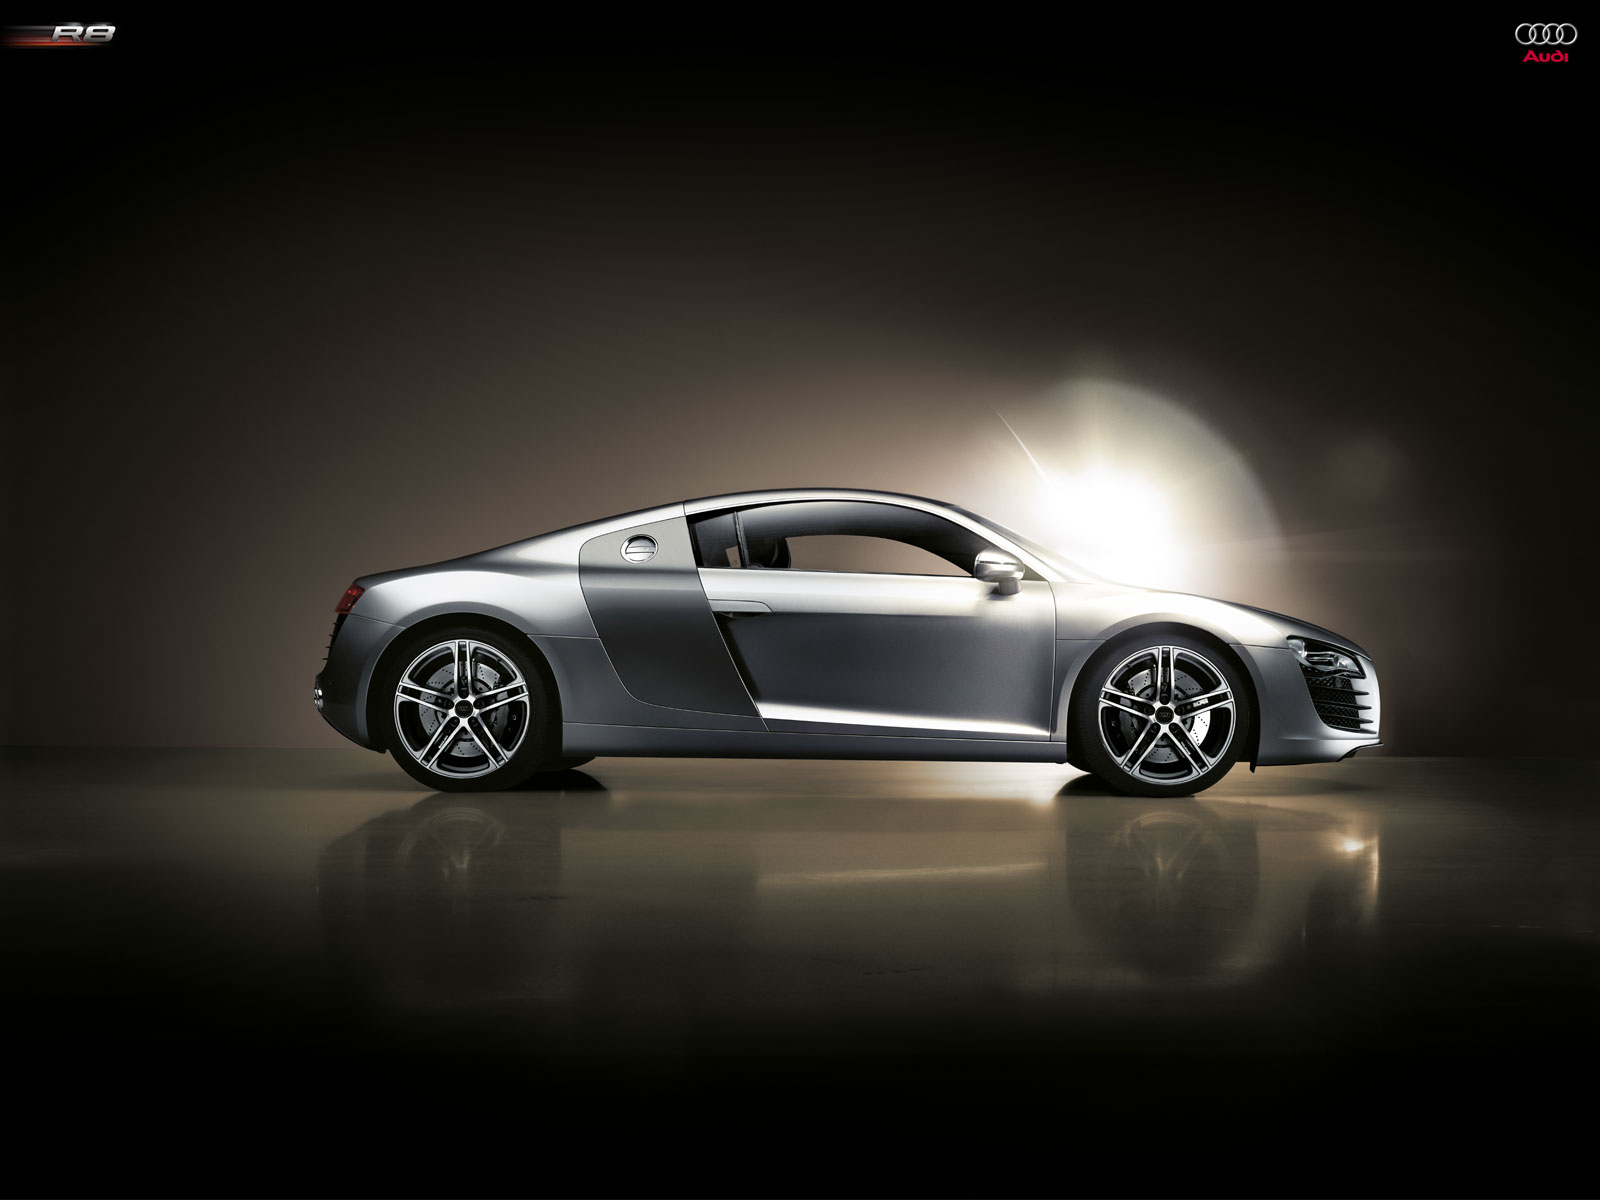 audi r8 017 Hd Exotic Car Wallpapers